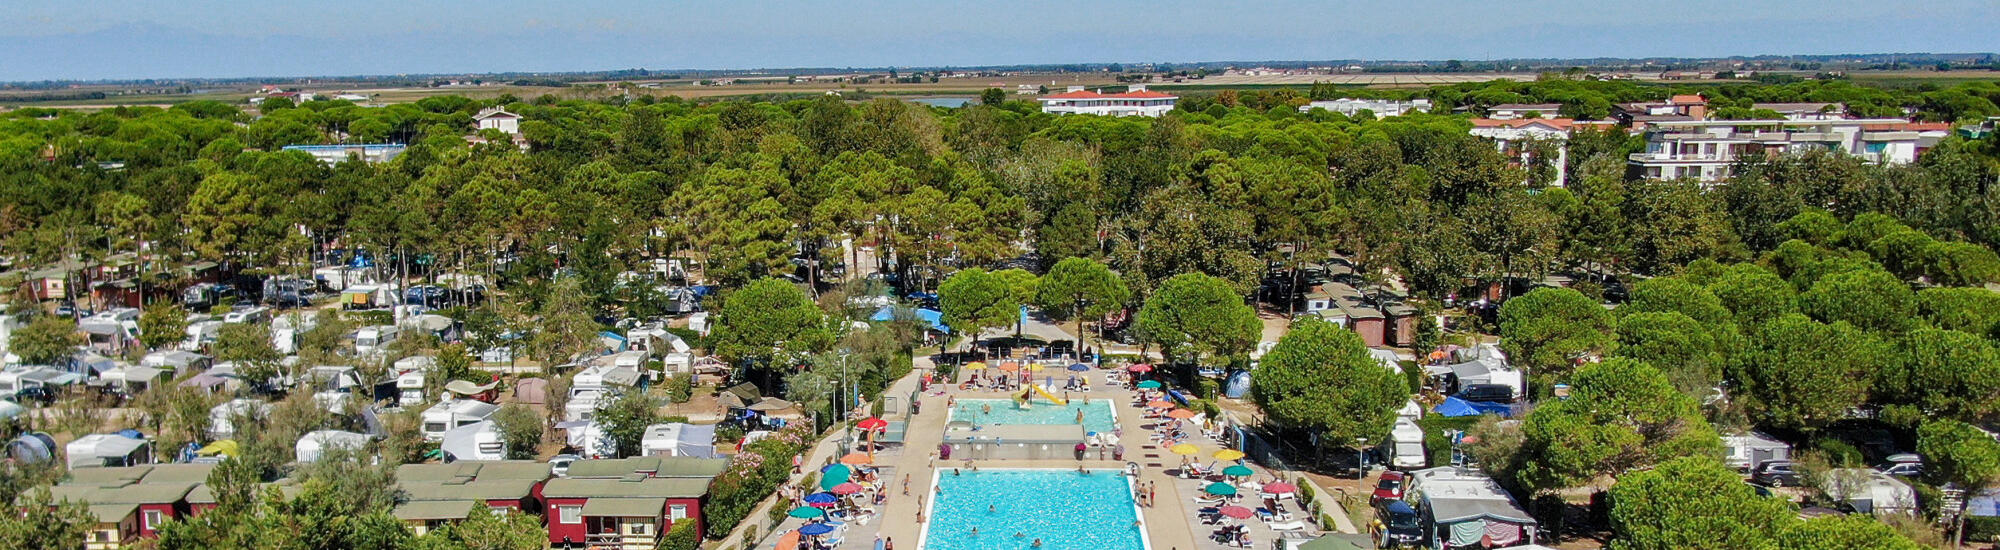 A safe summer and relaxing holidays at Camping Lido in Bibione